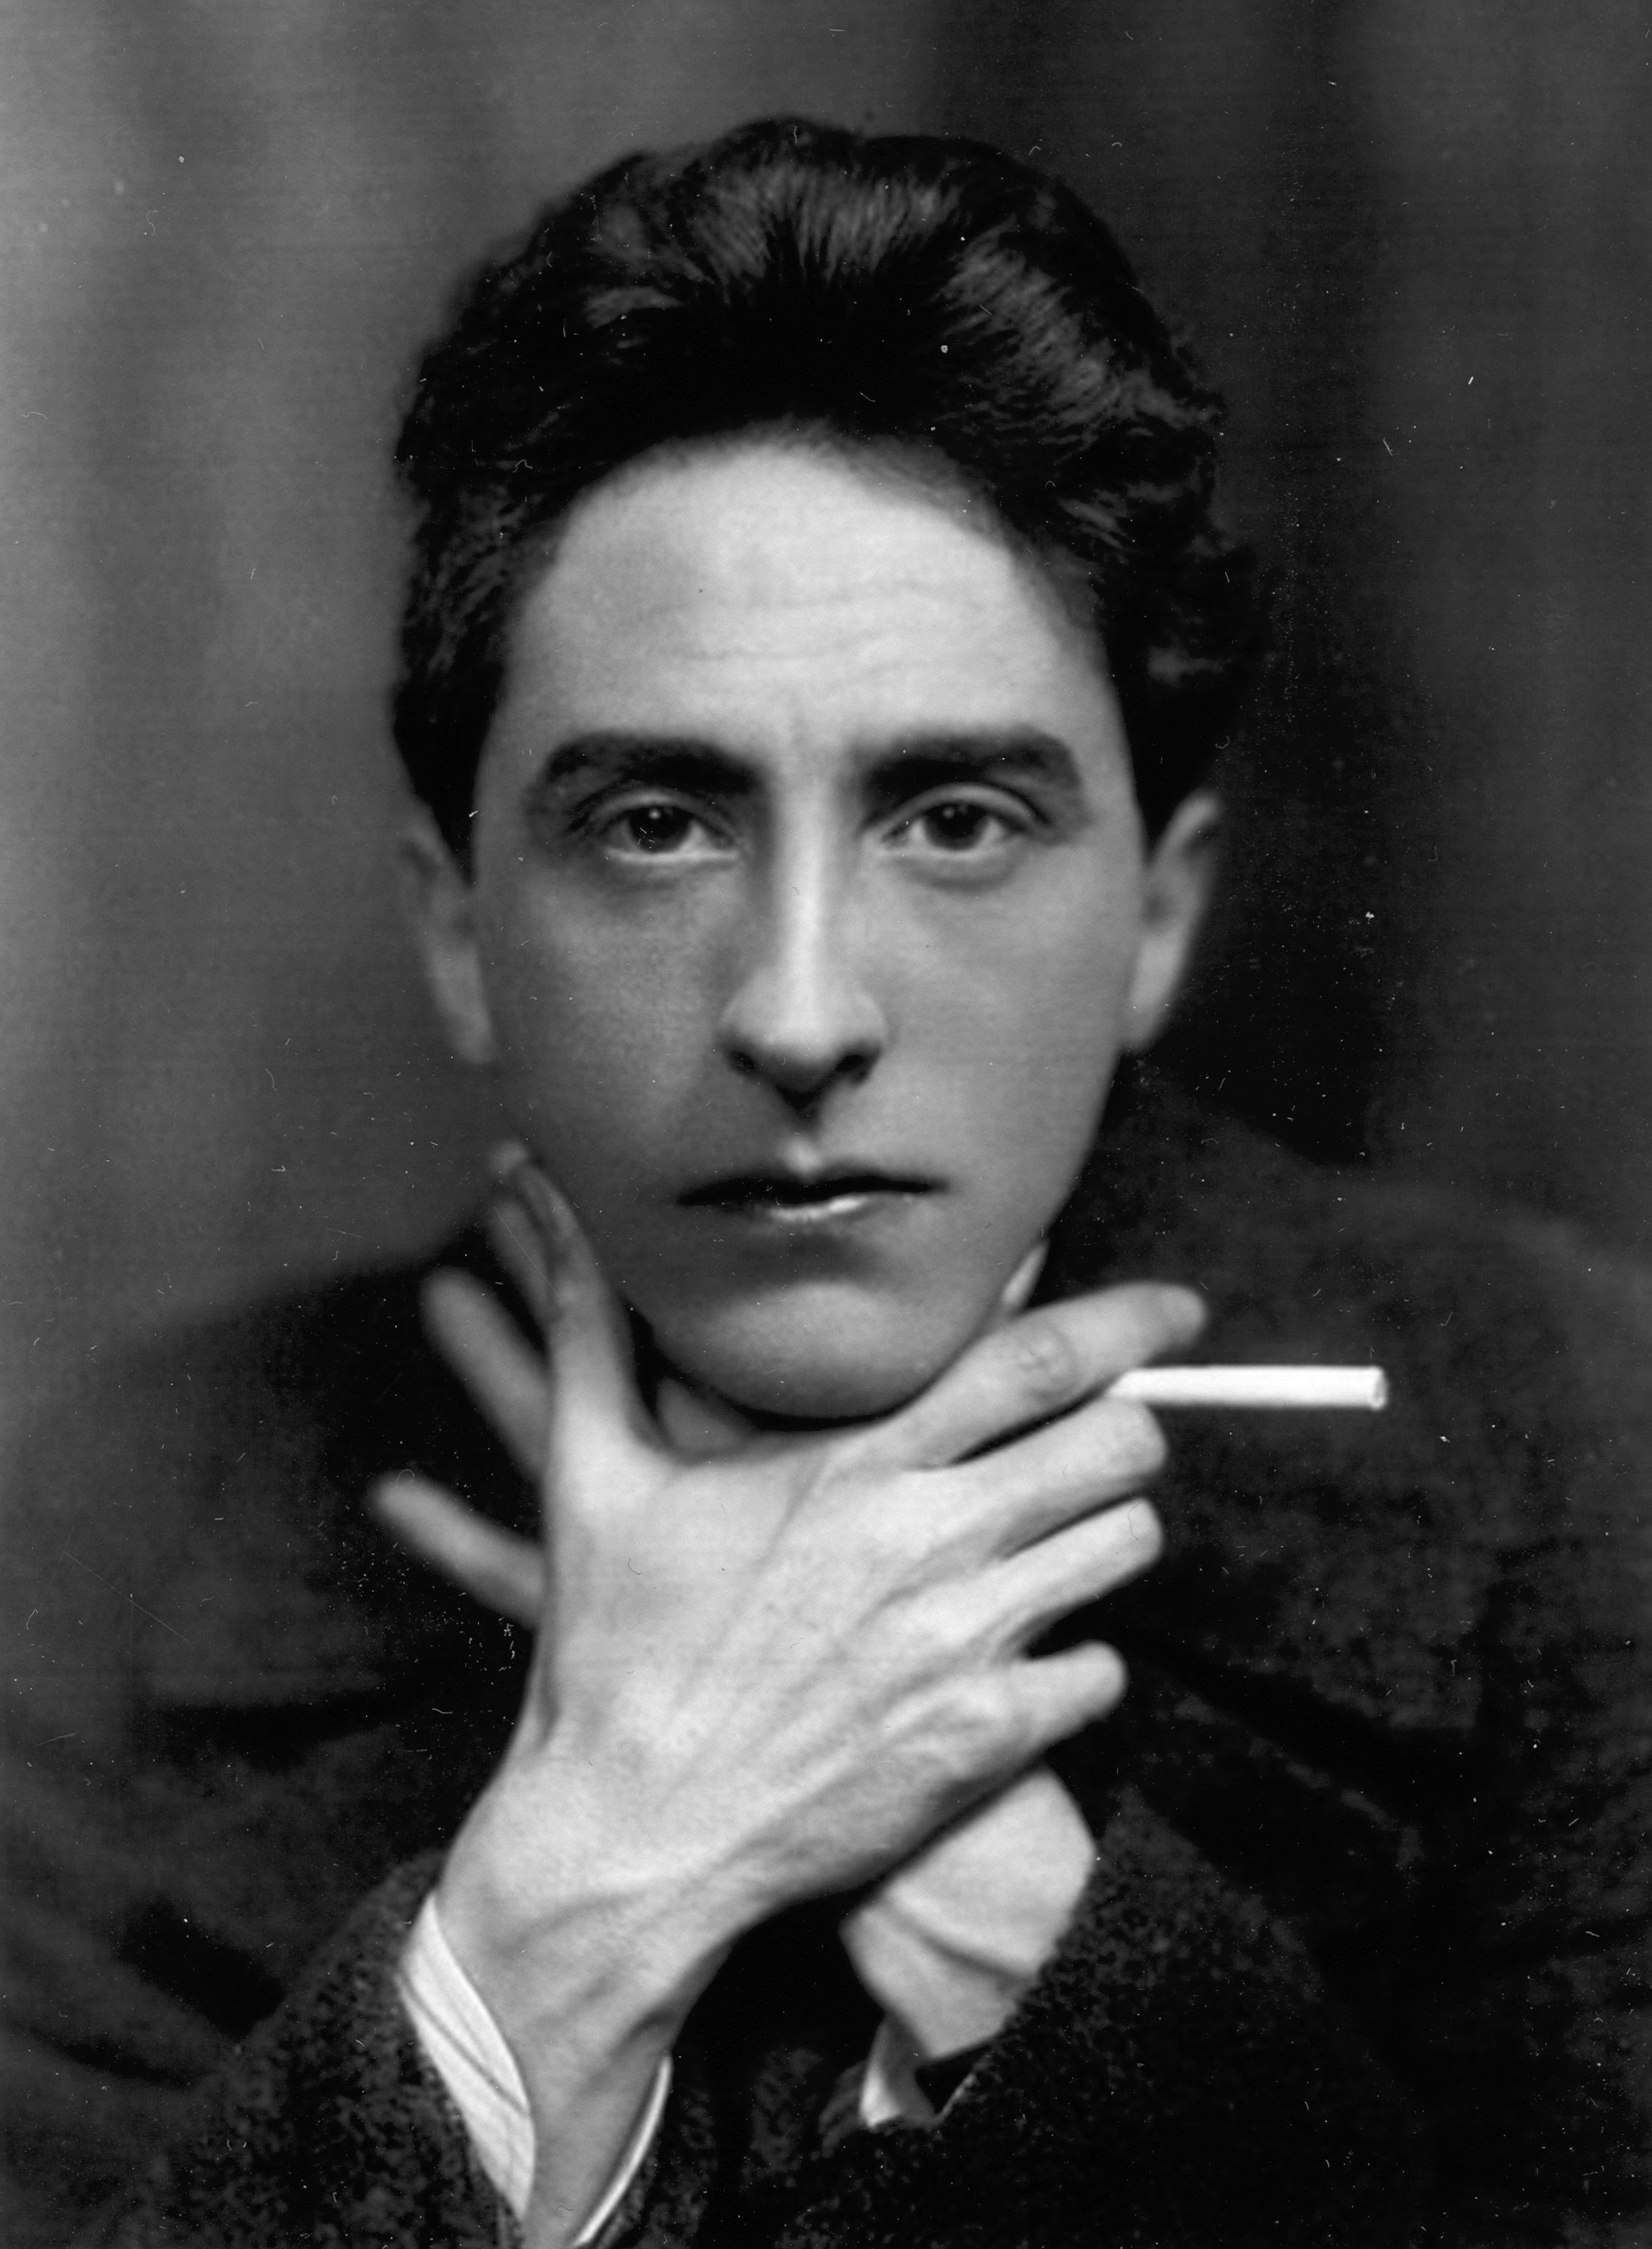 jean cocteau thesis Aspects of surrealism in the work of jean cocteau cook, gareth michael french psychology philosophy religion april 1978 thesis or the work of jean cocteau.